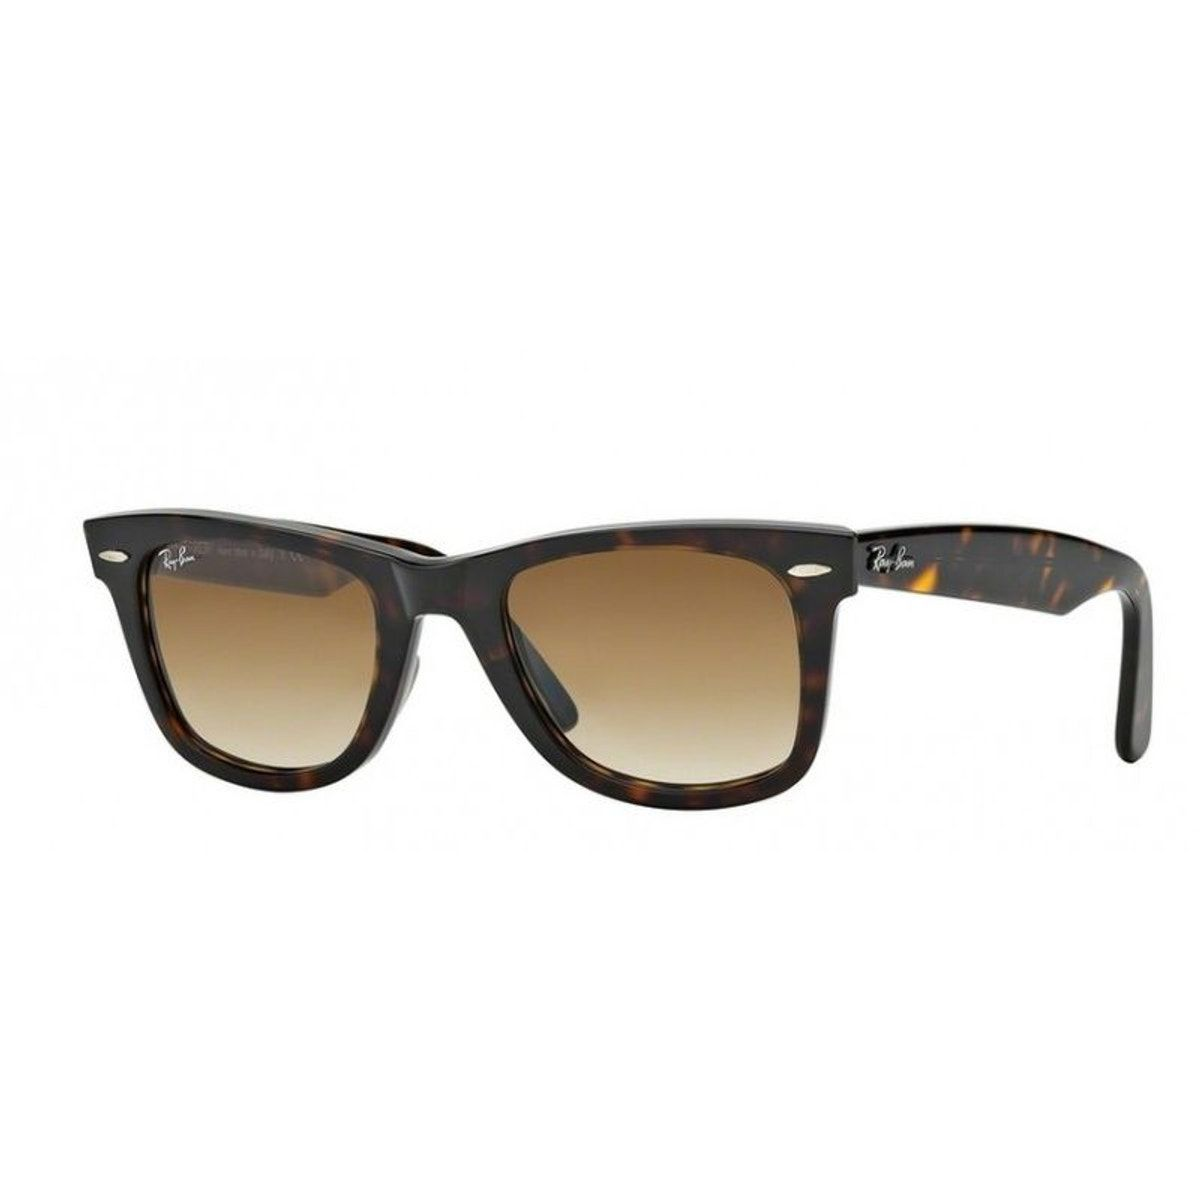 ray ban femme 2140